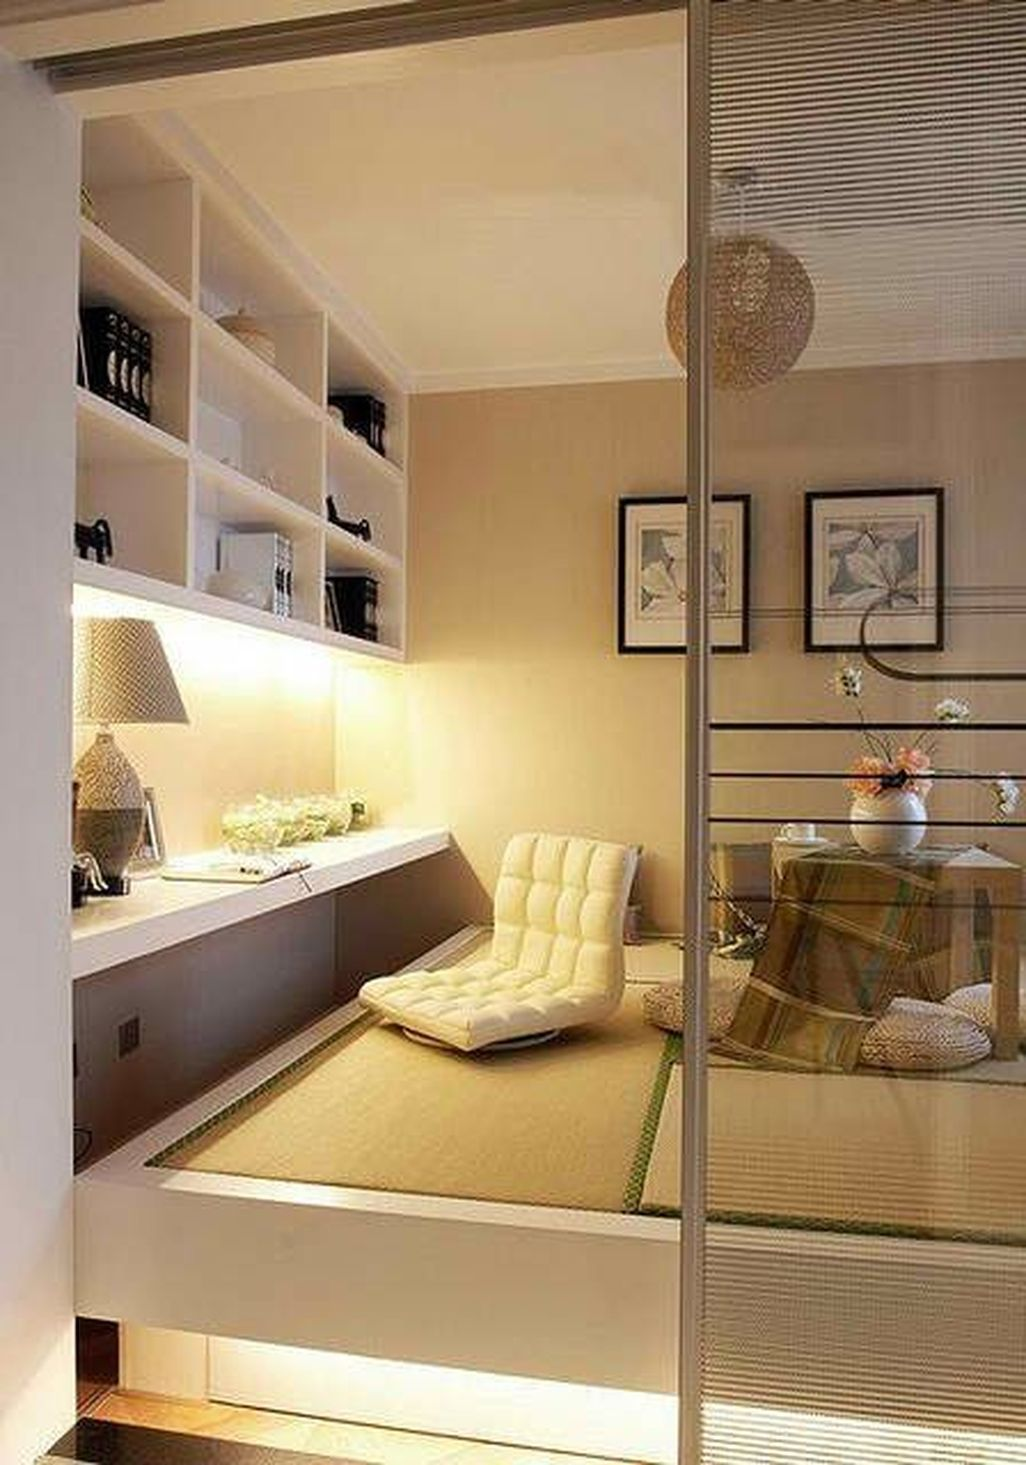 5 Creative And Modern Tricks Attic Home Doors Attic Skylight Home Office Attic Kitchen Shelves Japanese Living Rooms Japanese Style Bedroom Small Room Design